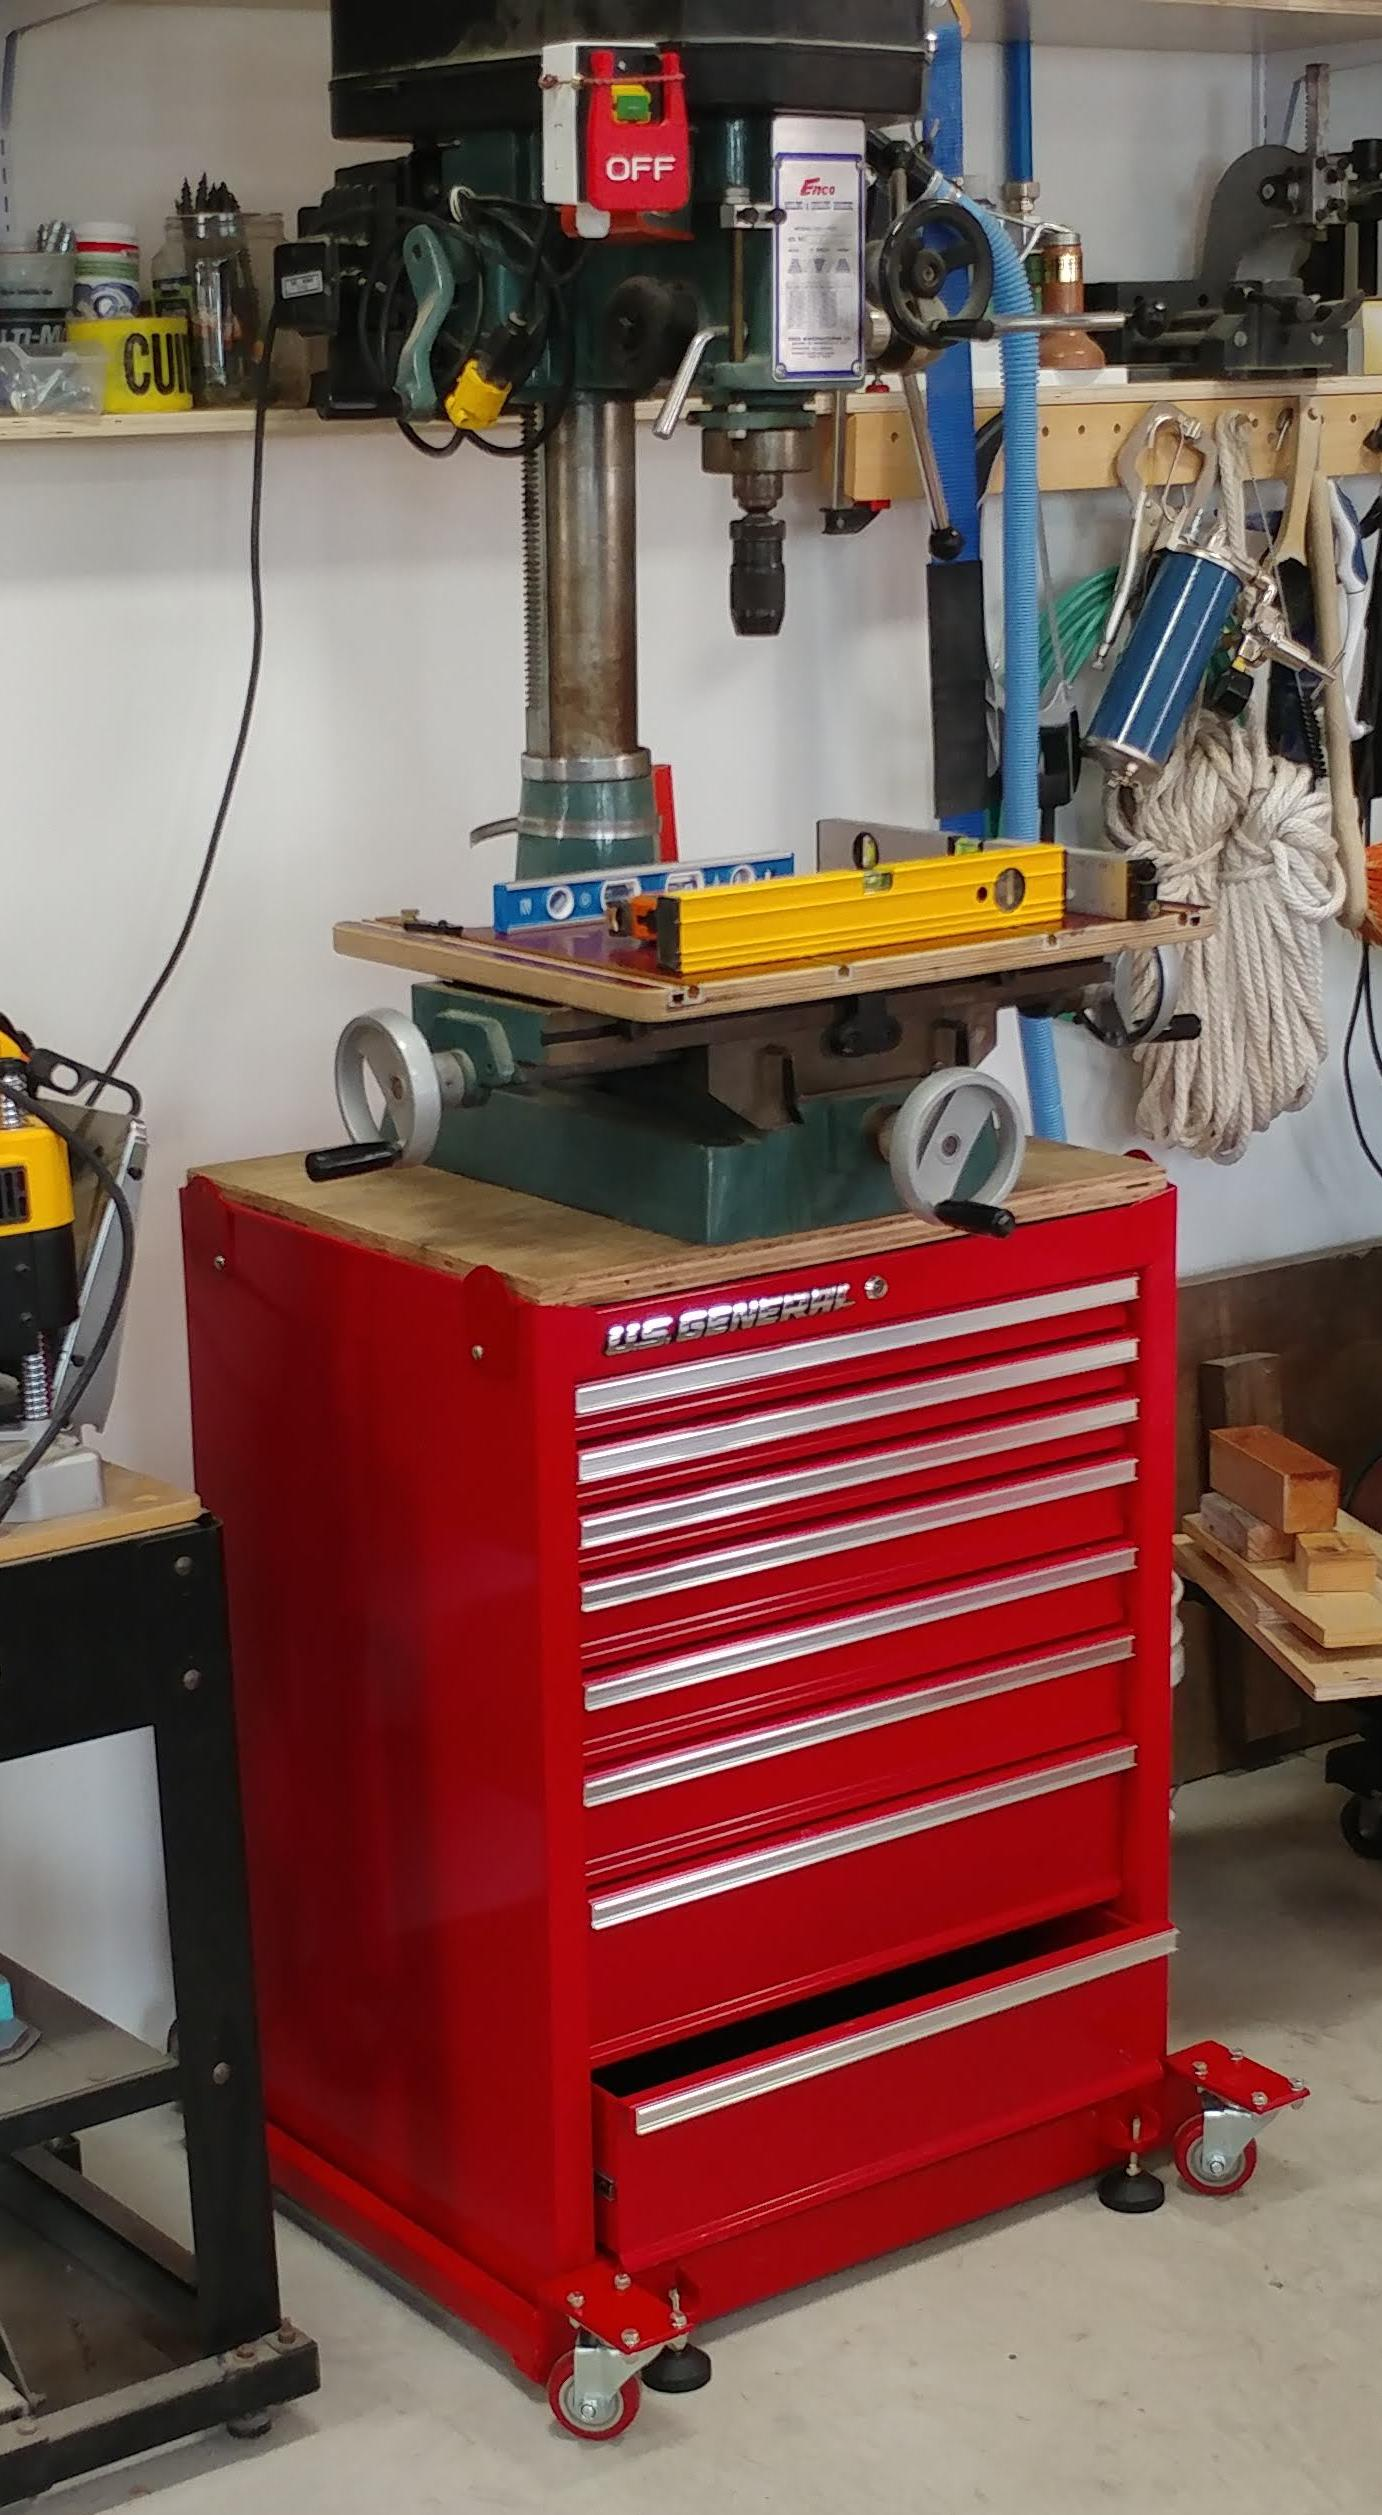 Rong Fu RF-25 on Harbor Freight Drawers Stand c.jpg